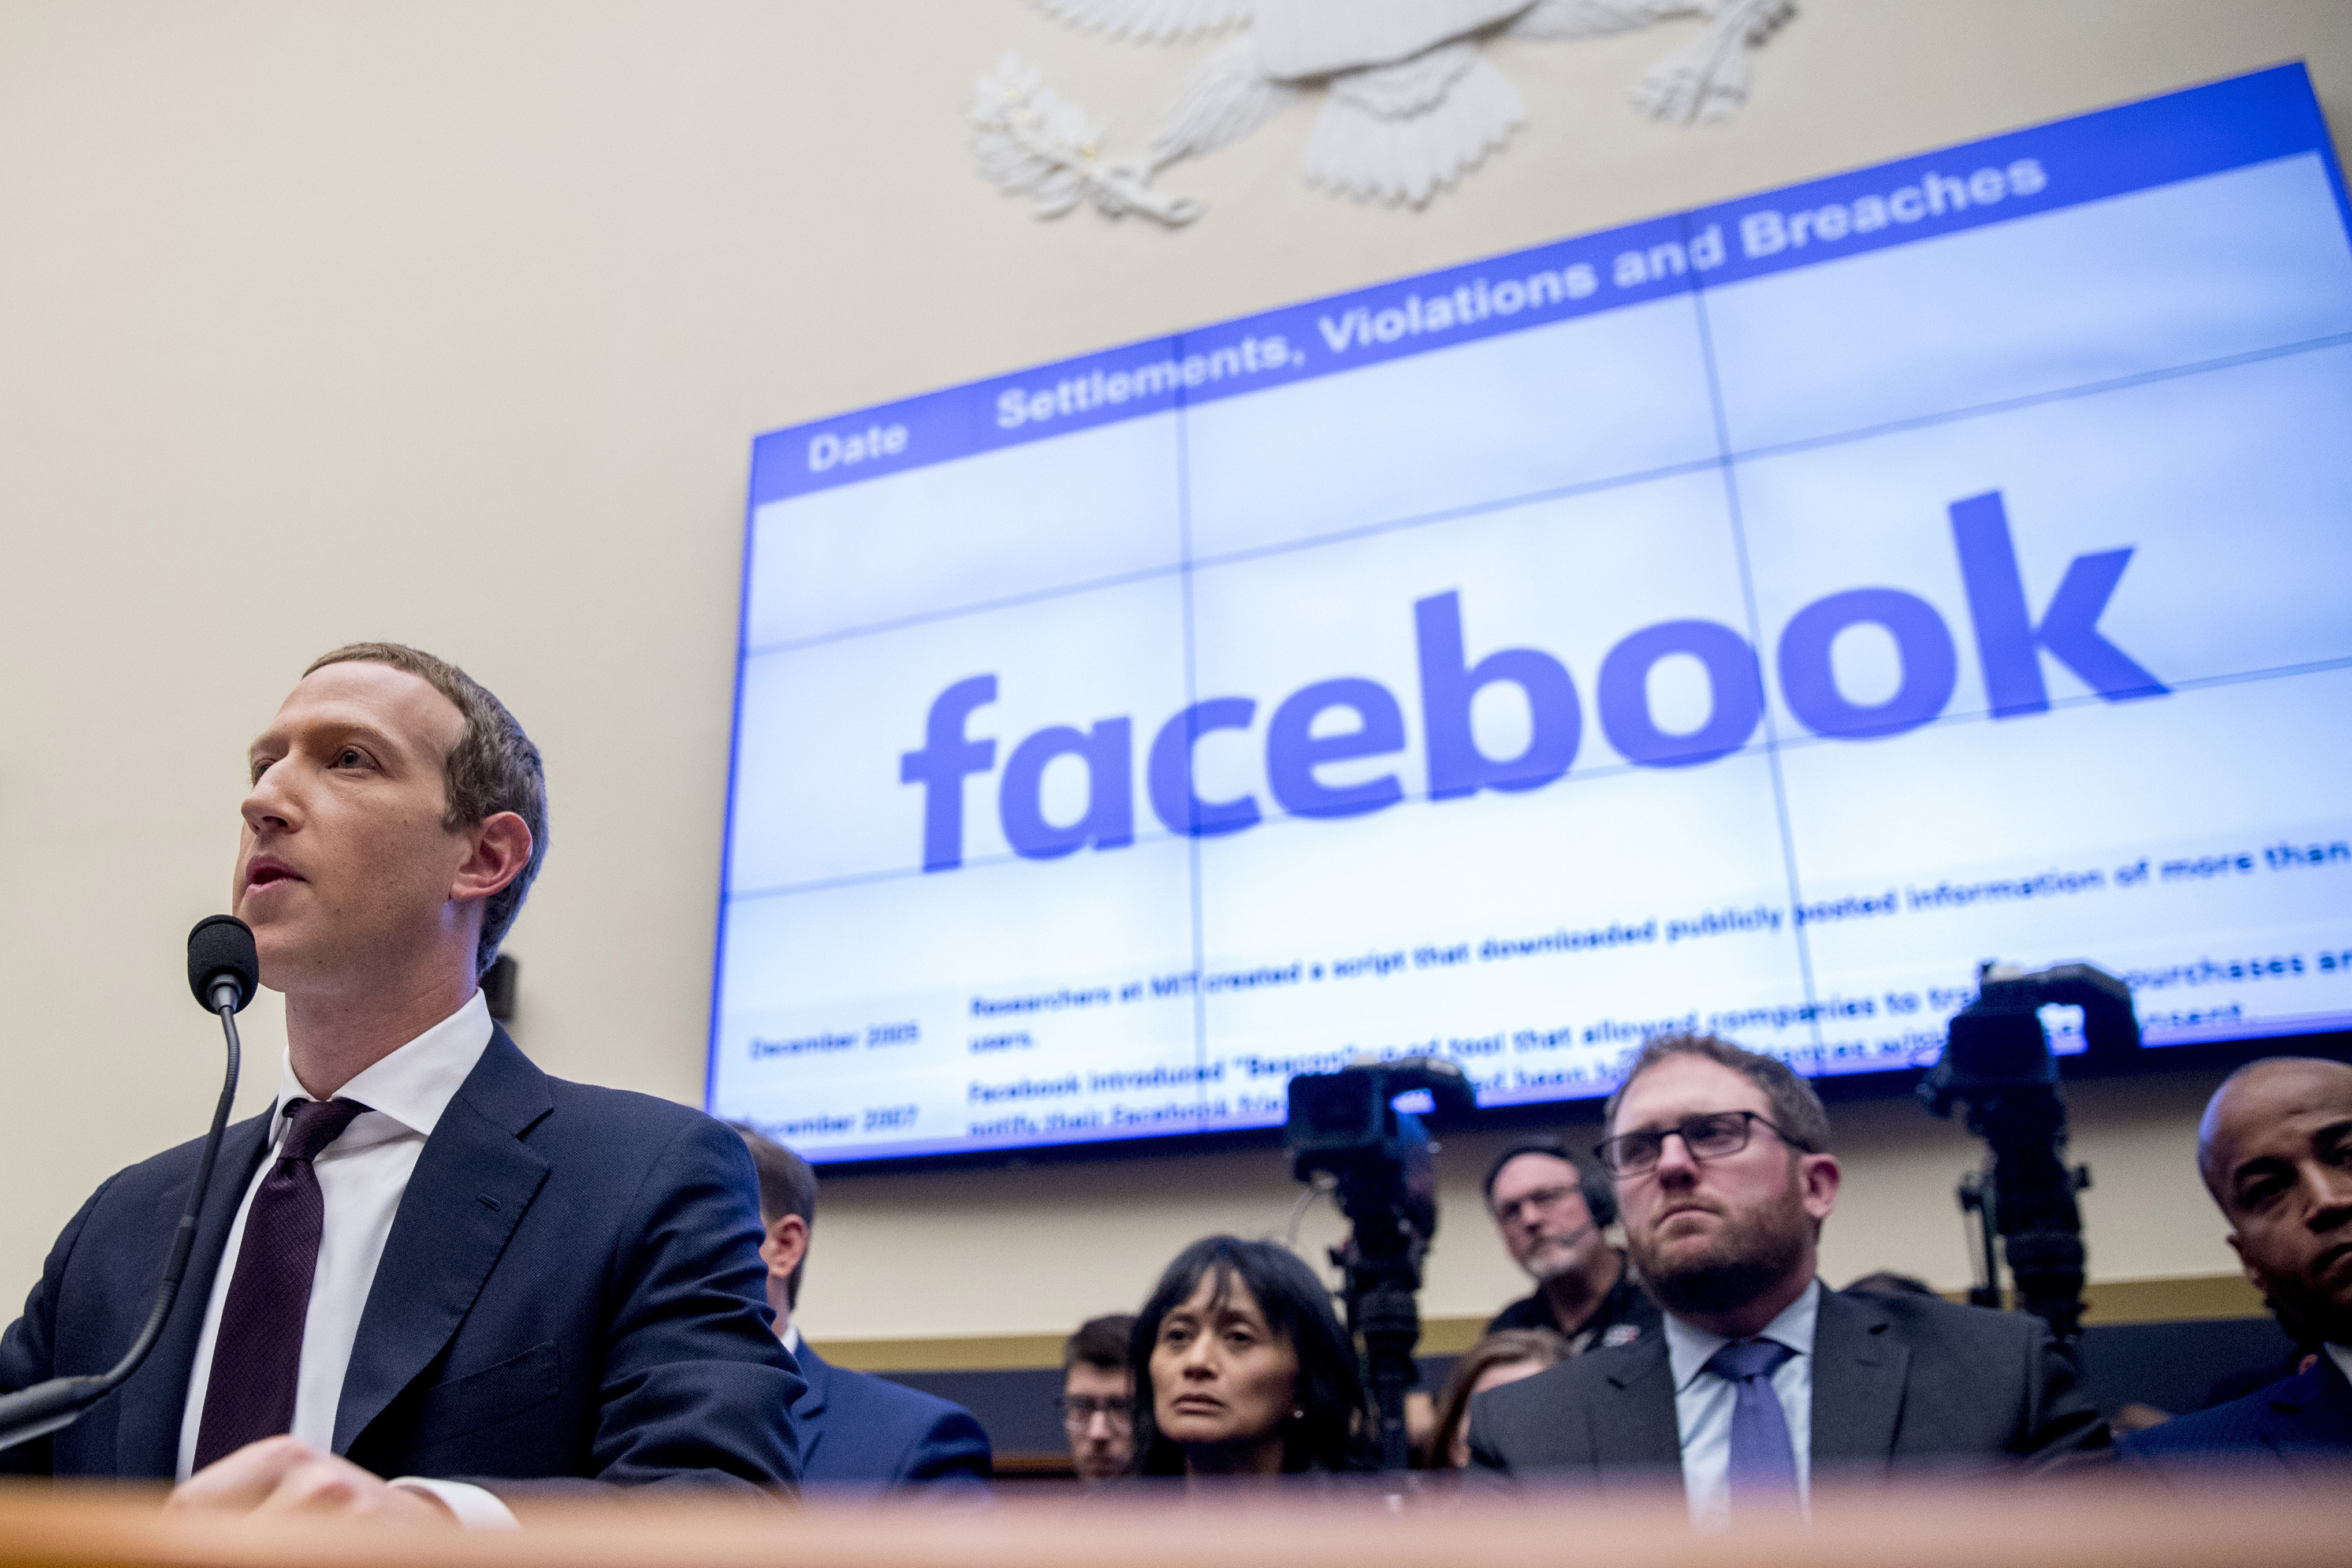 Facebook CEO Mark Zuckerberg testifies before a House Financial Services Committee hearing on Oct. 23, 2019.